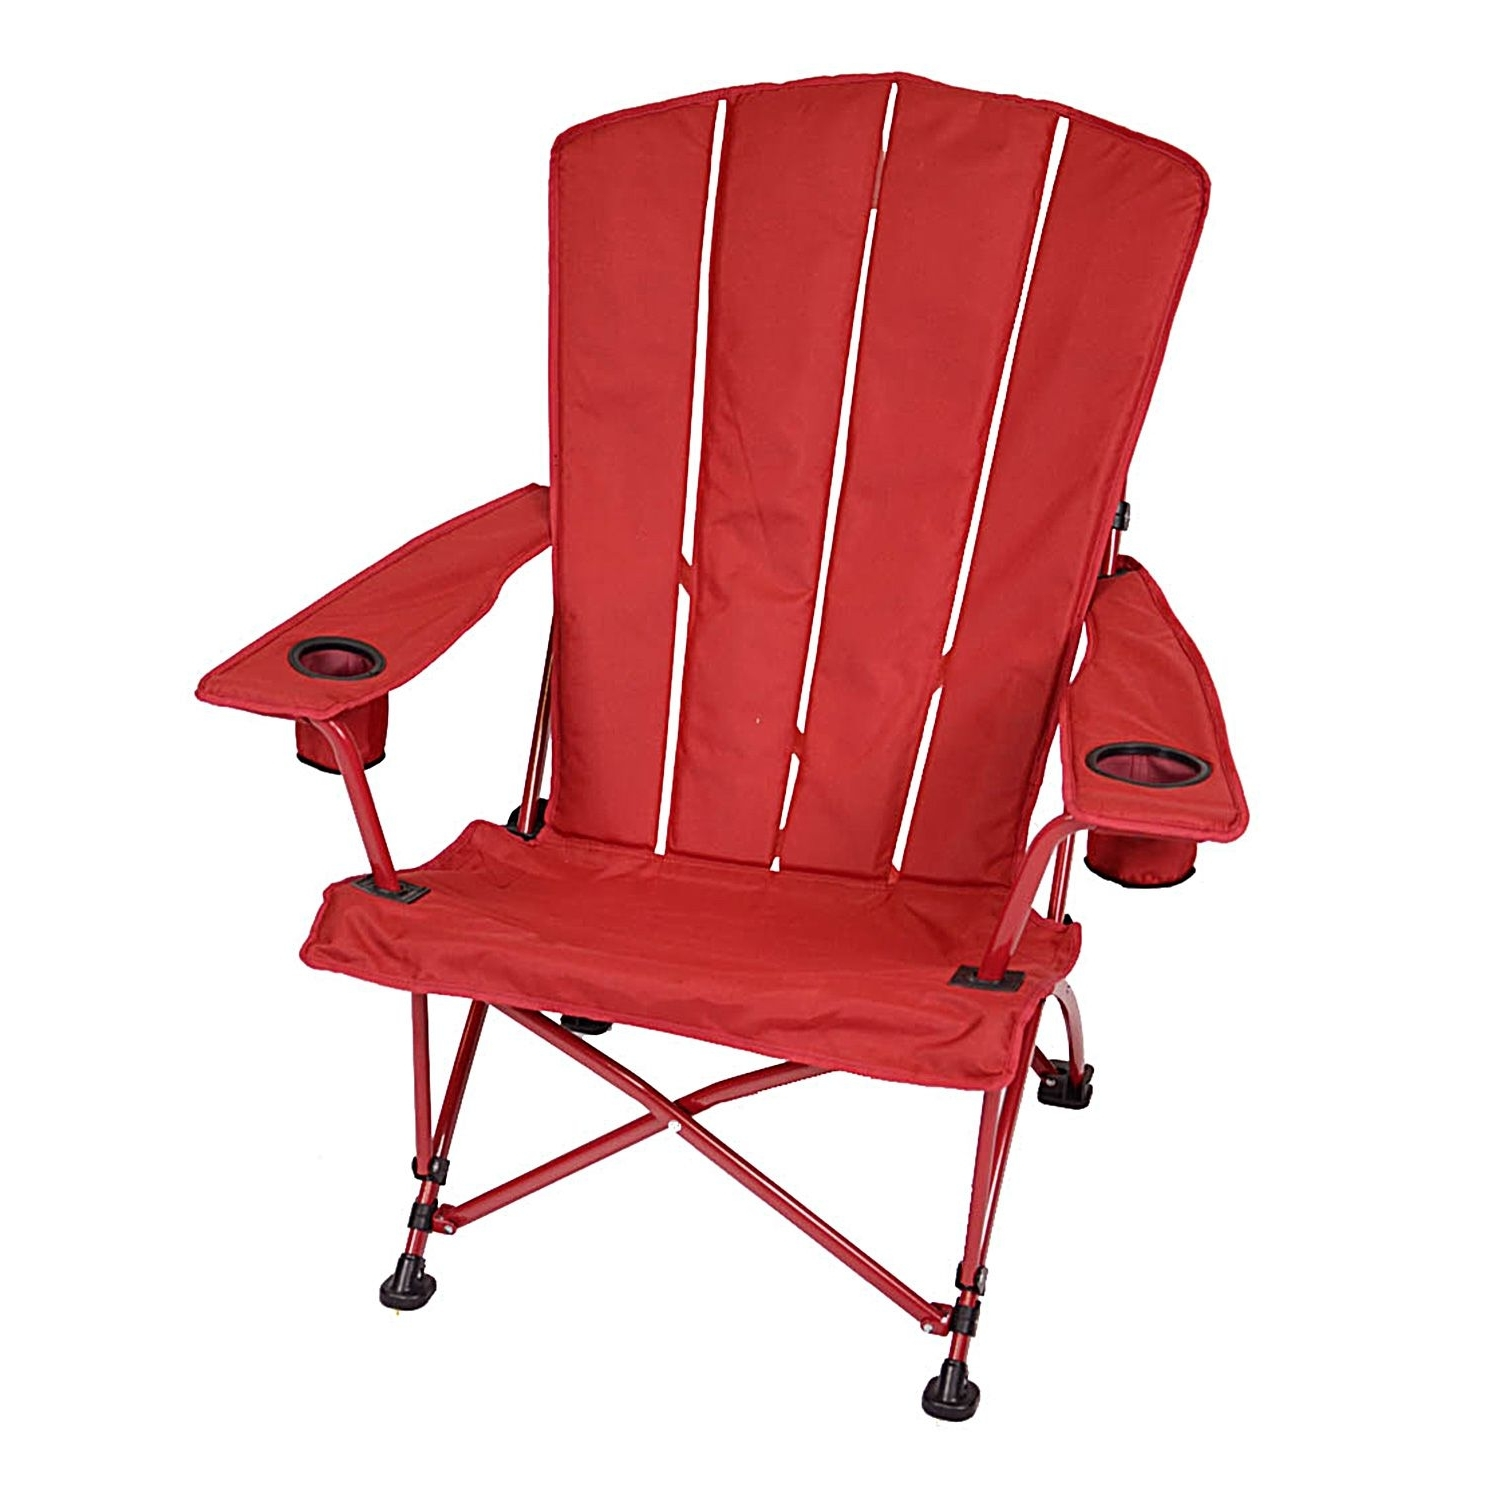 Best And Newest Foldable Adirondack Chair – Red – Sam's Club Most Comfortable Camp Within Sam's Club Chaise Lounge Chairs (View 13 of 15)